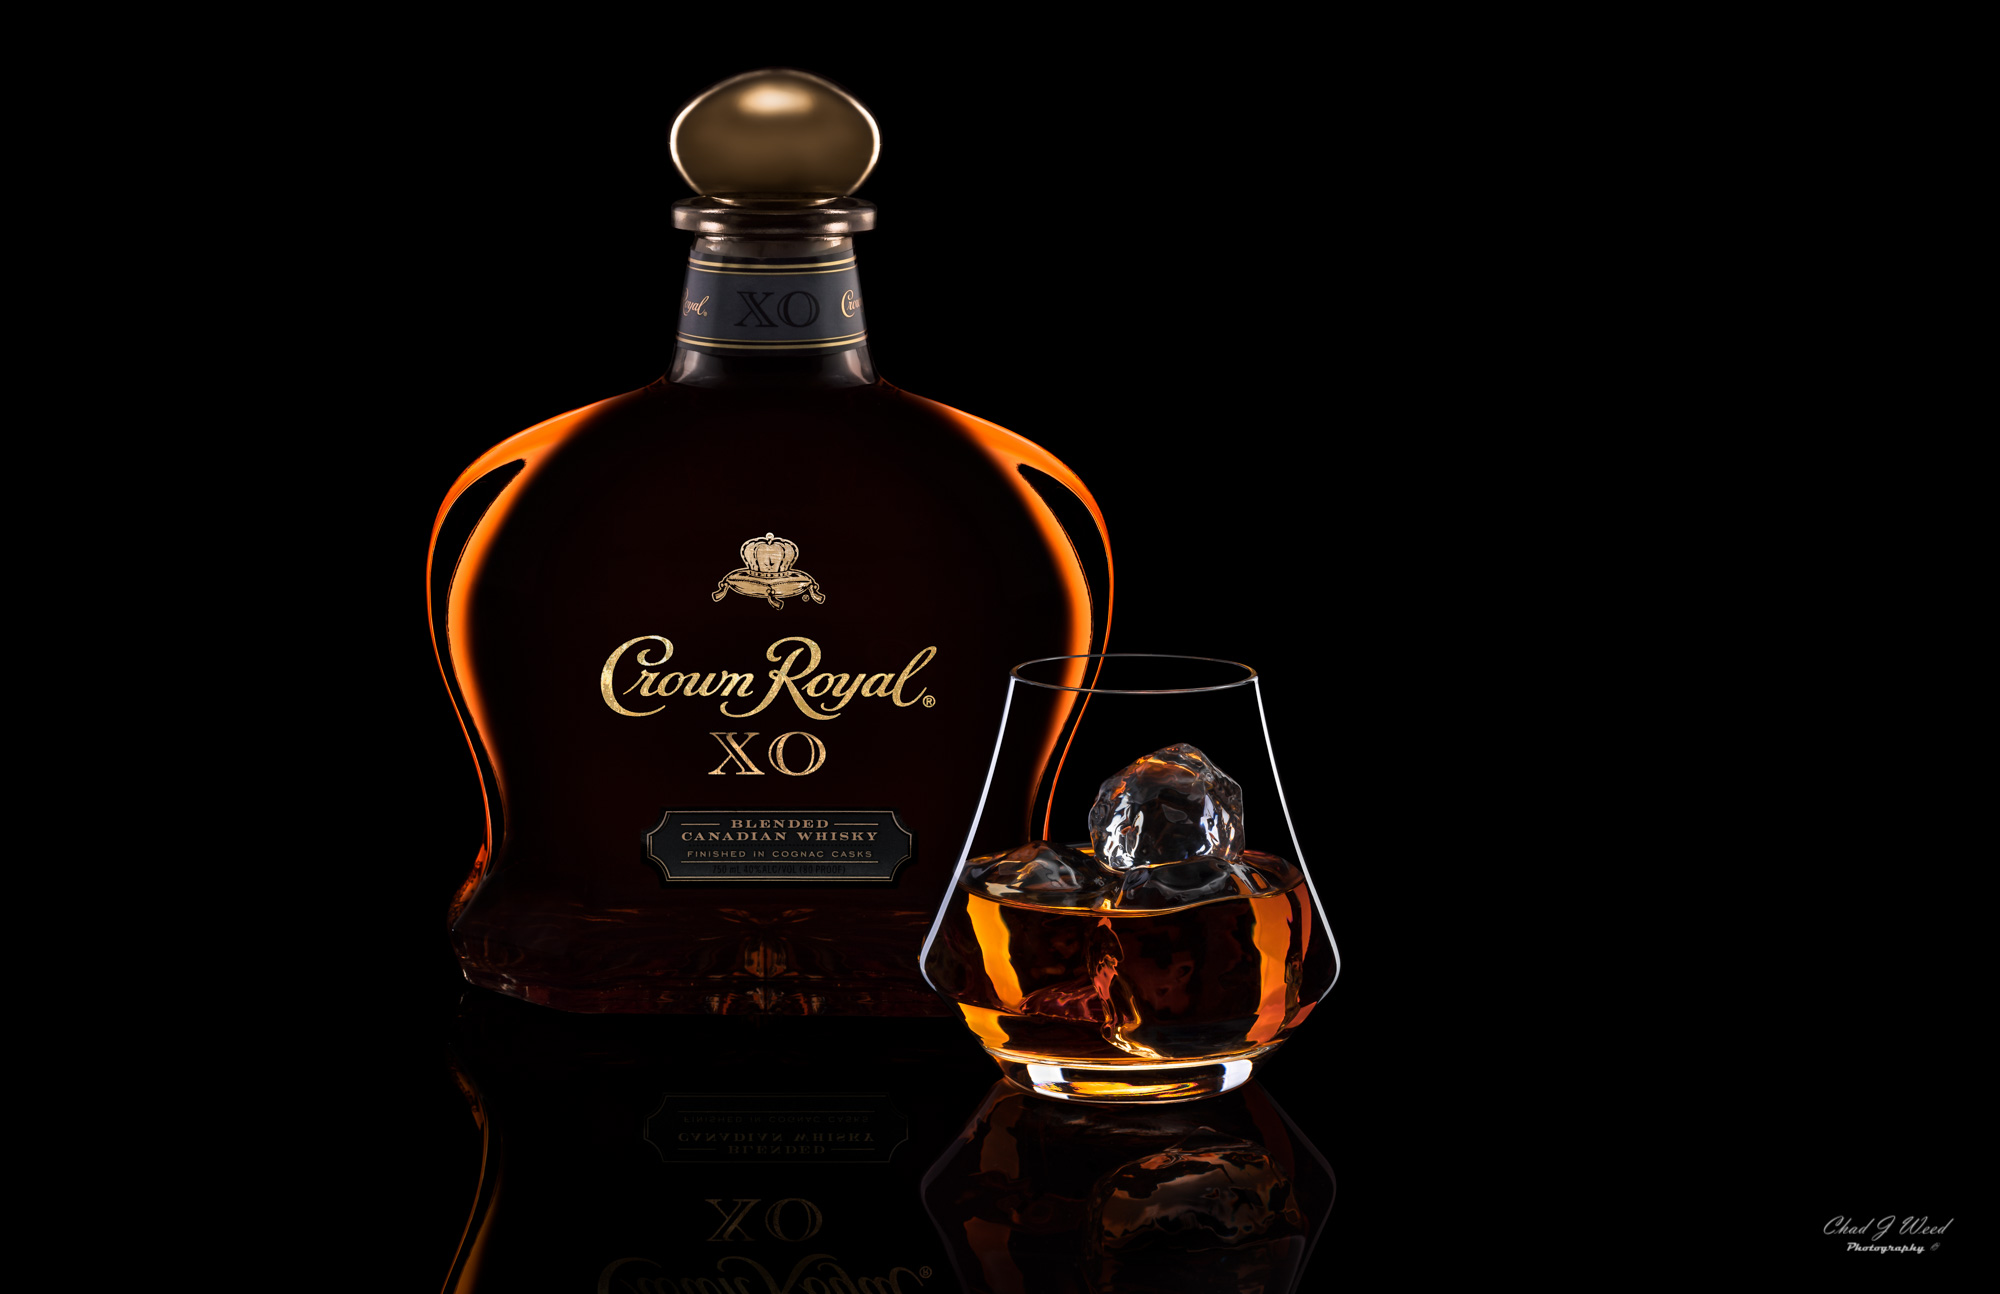 Crown Royal XO by Arizona Commercial Beverage Photographer Chad J Weed